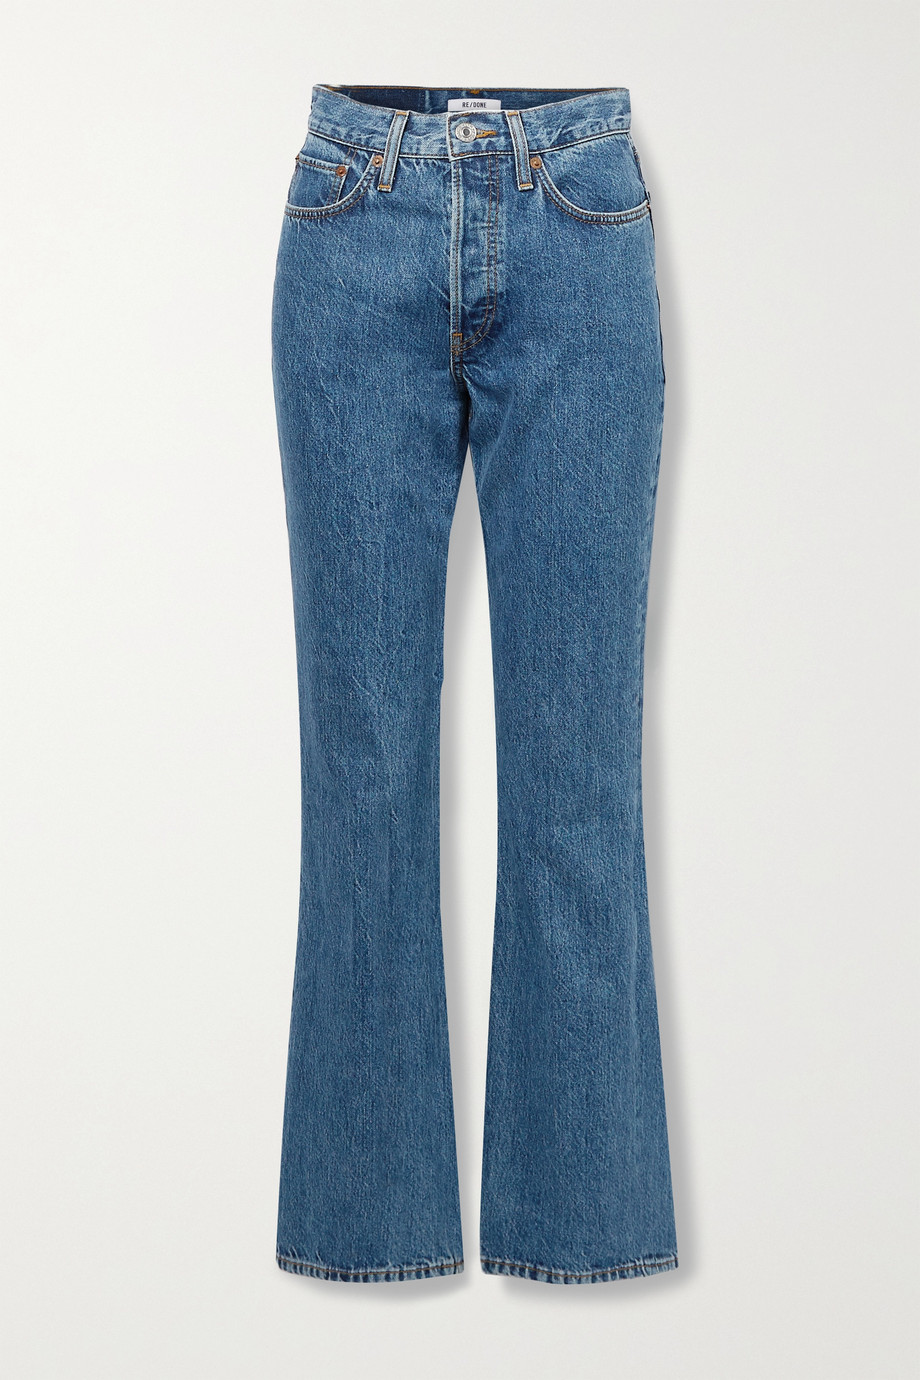 RE/DONE + NET SUSTAIN 70s high-rise bootcut jeans